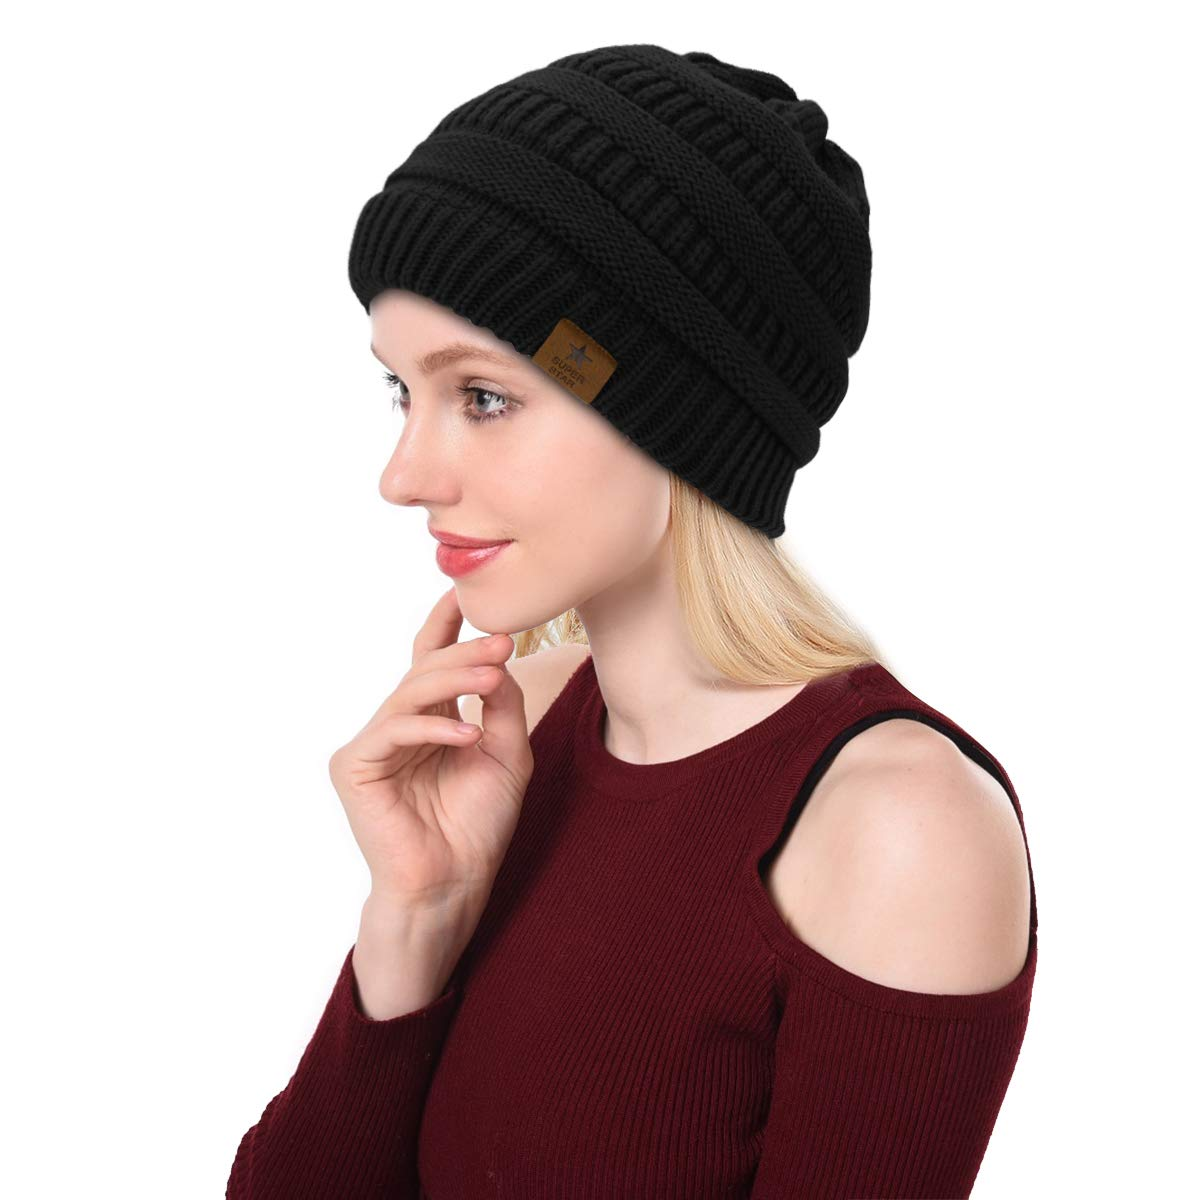 f36ce81ce28 Details about Zando Womens Winter Warm Knit Beanie Hat Thick Slouchy Cap  Unisex Fleece Black